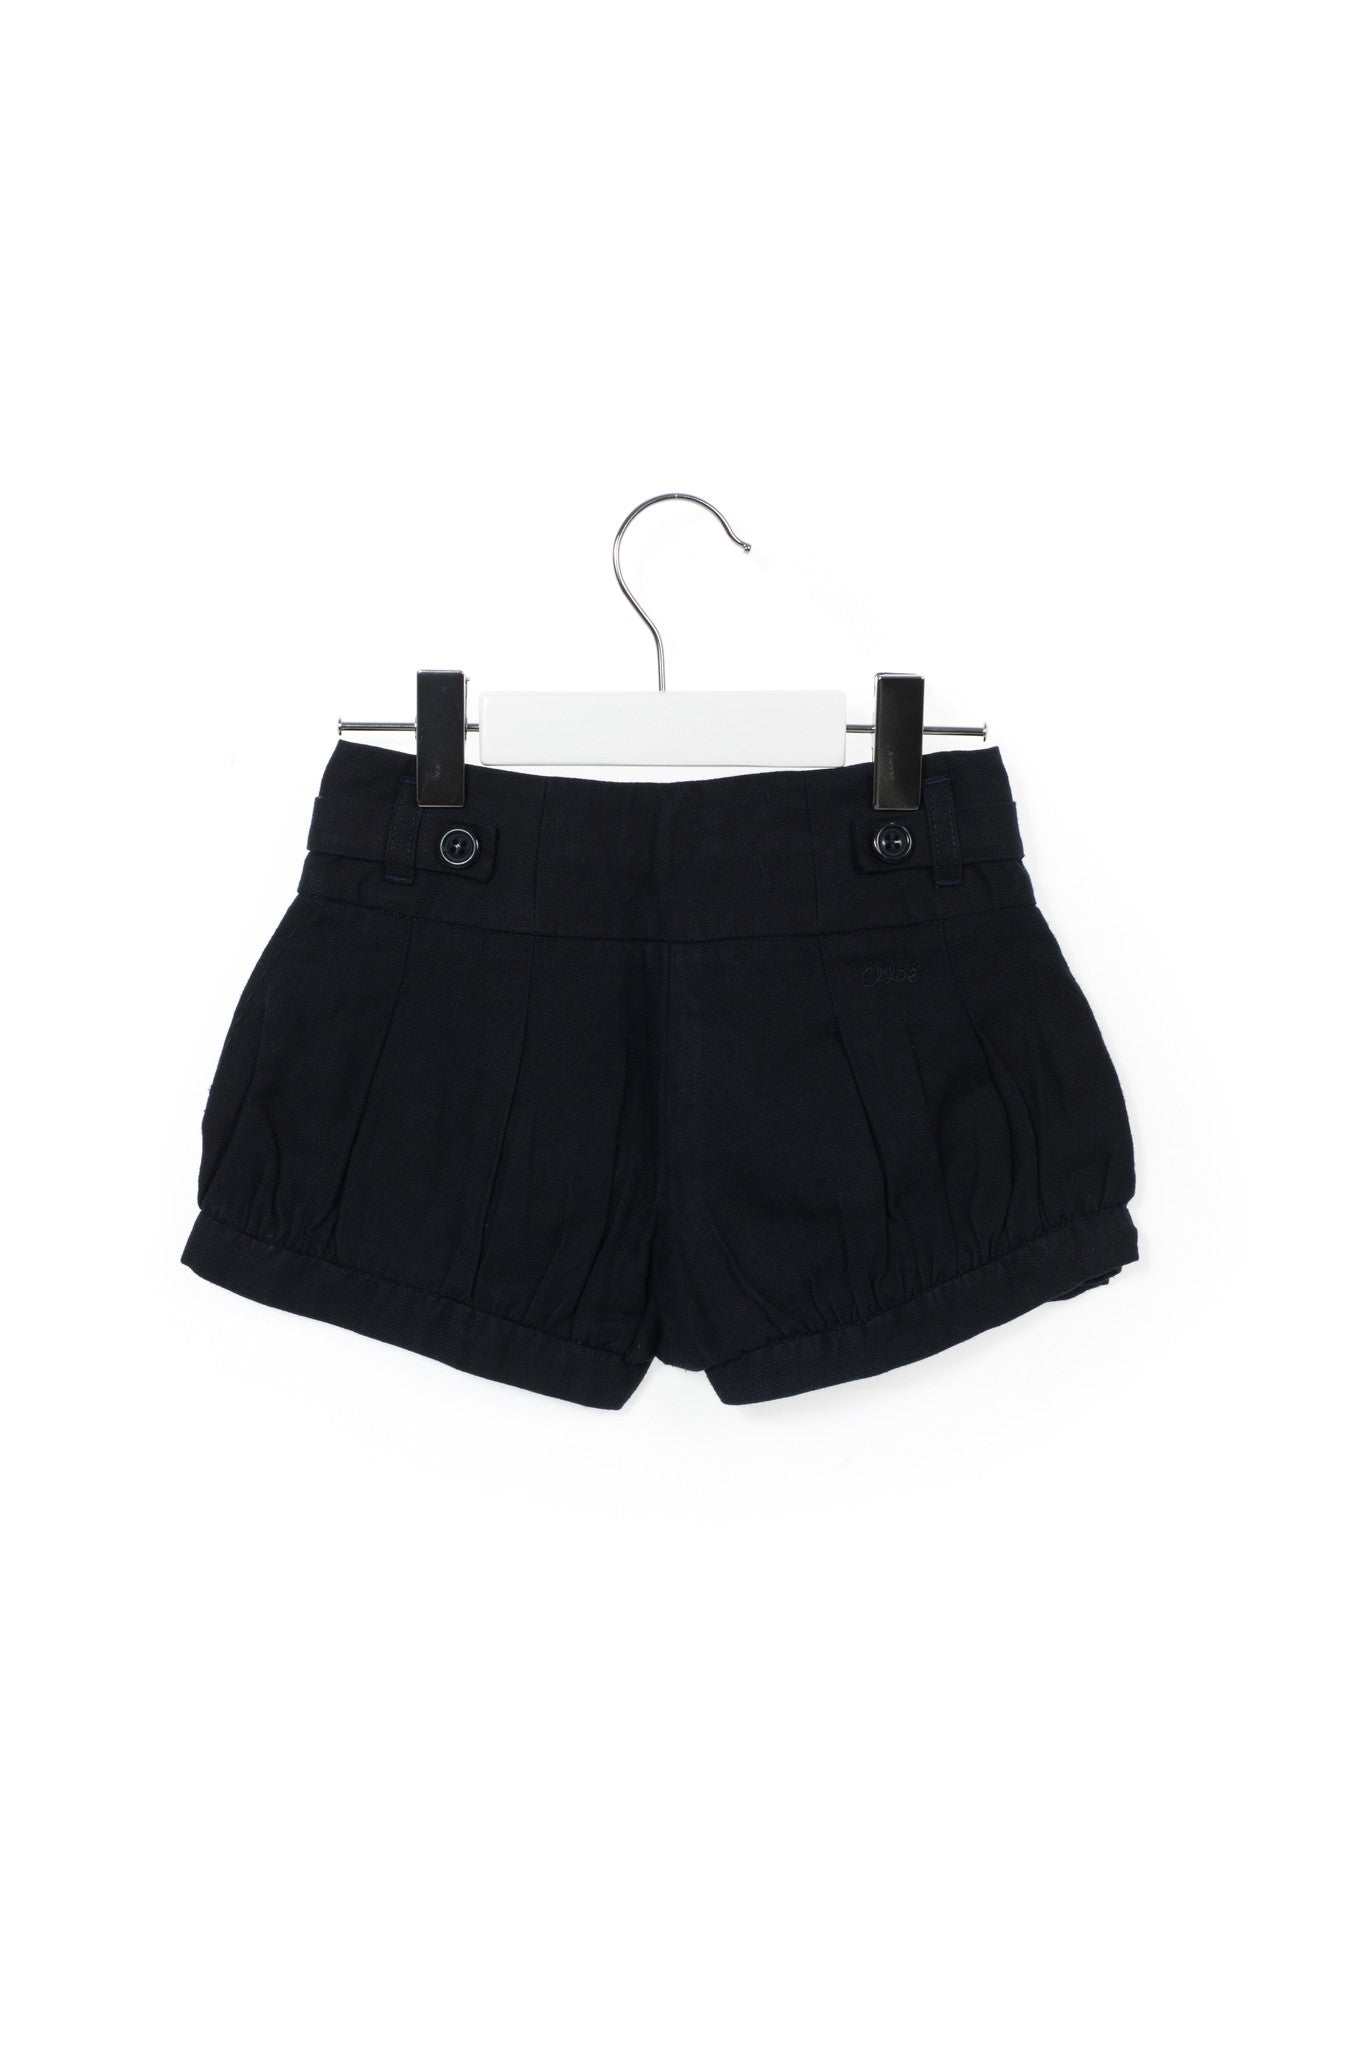 Shorts 4T, Chloe at Retykle - Online Baby & Kids Clothing Up to 90% Off